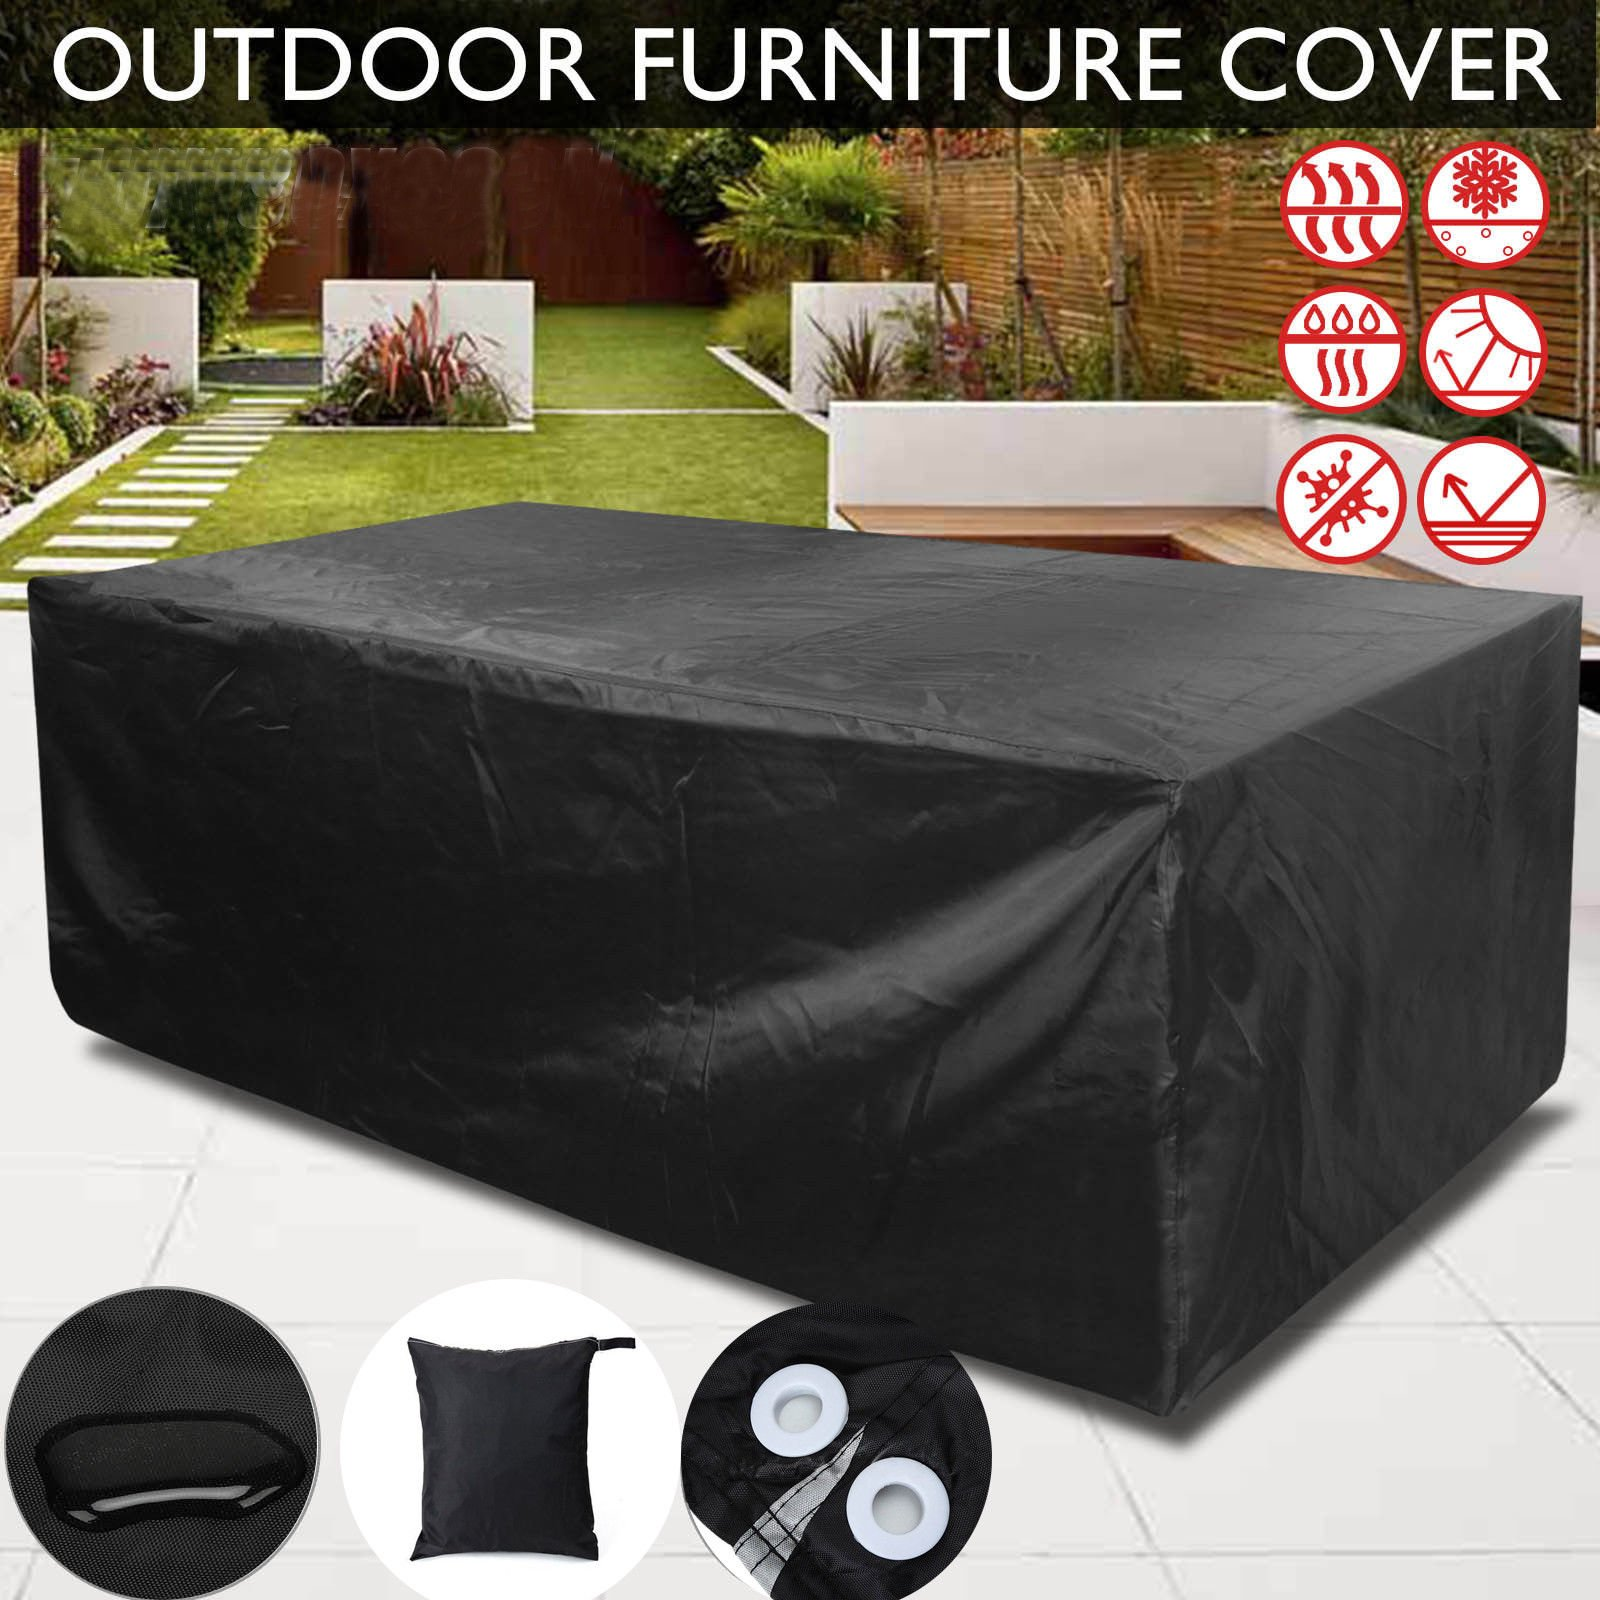 PESTORY 210D Heavy Anti Dust UV Rain Cover Outdoor Furniture Cover Waterproof Dustproof Cube Table Chair Cover (27018089cm)